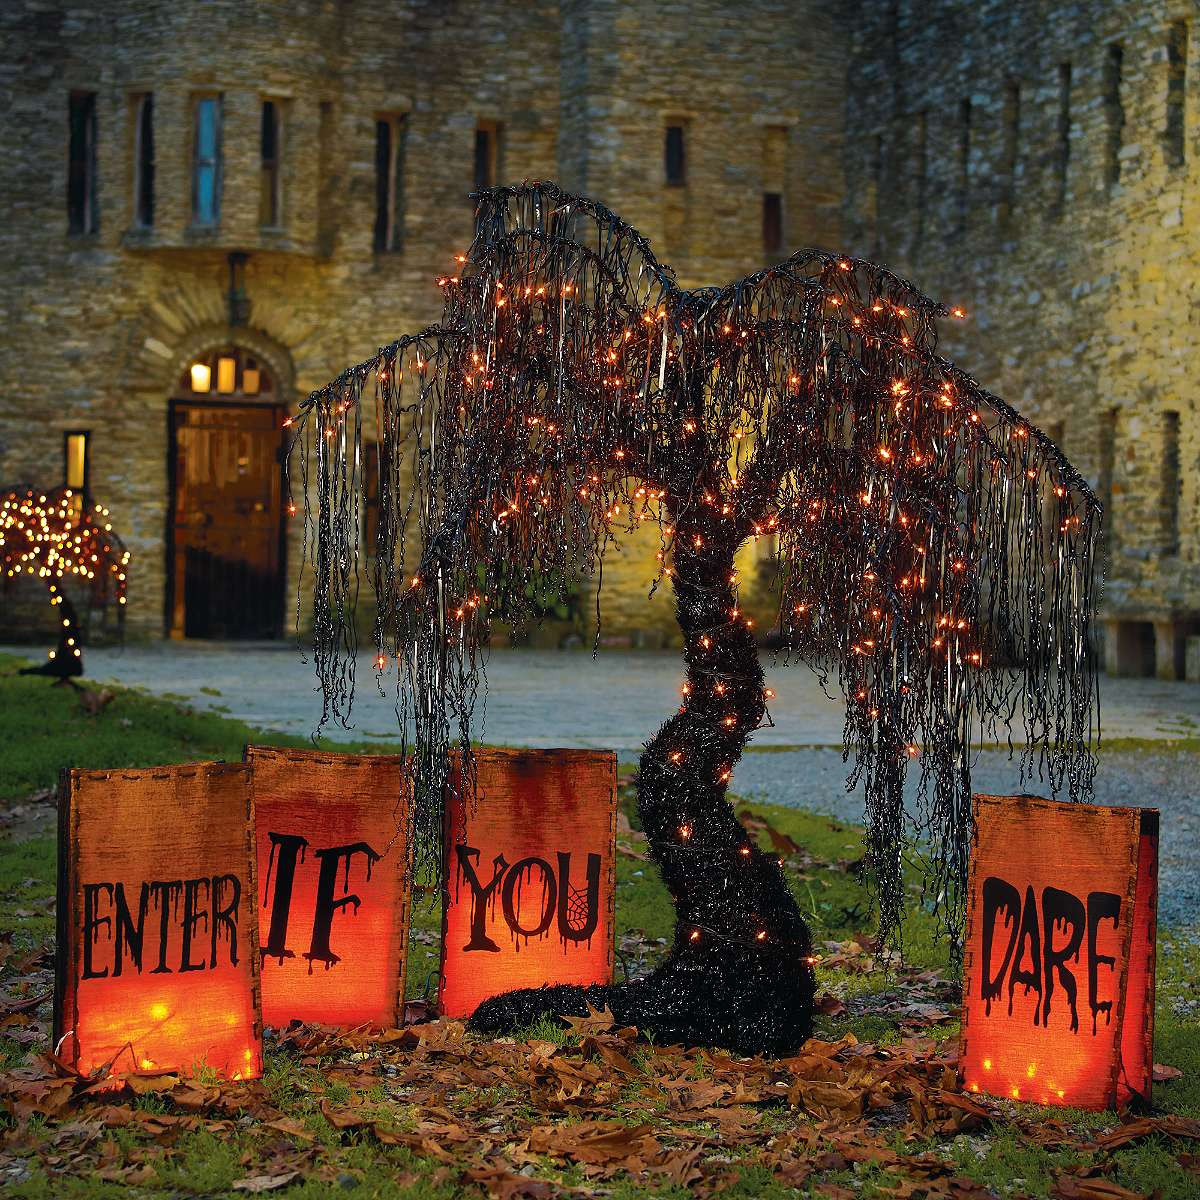 Outdoor Halloween Decorations 50 Best Diy Halloween Outdoor Decorations for 2017